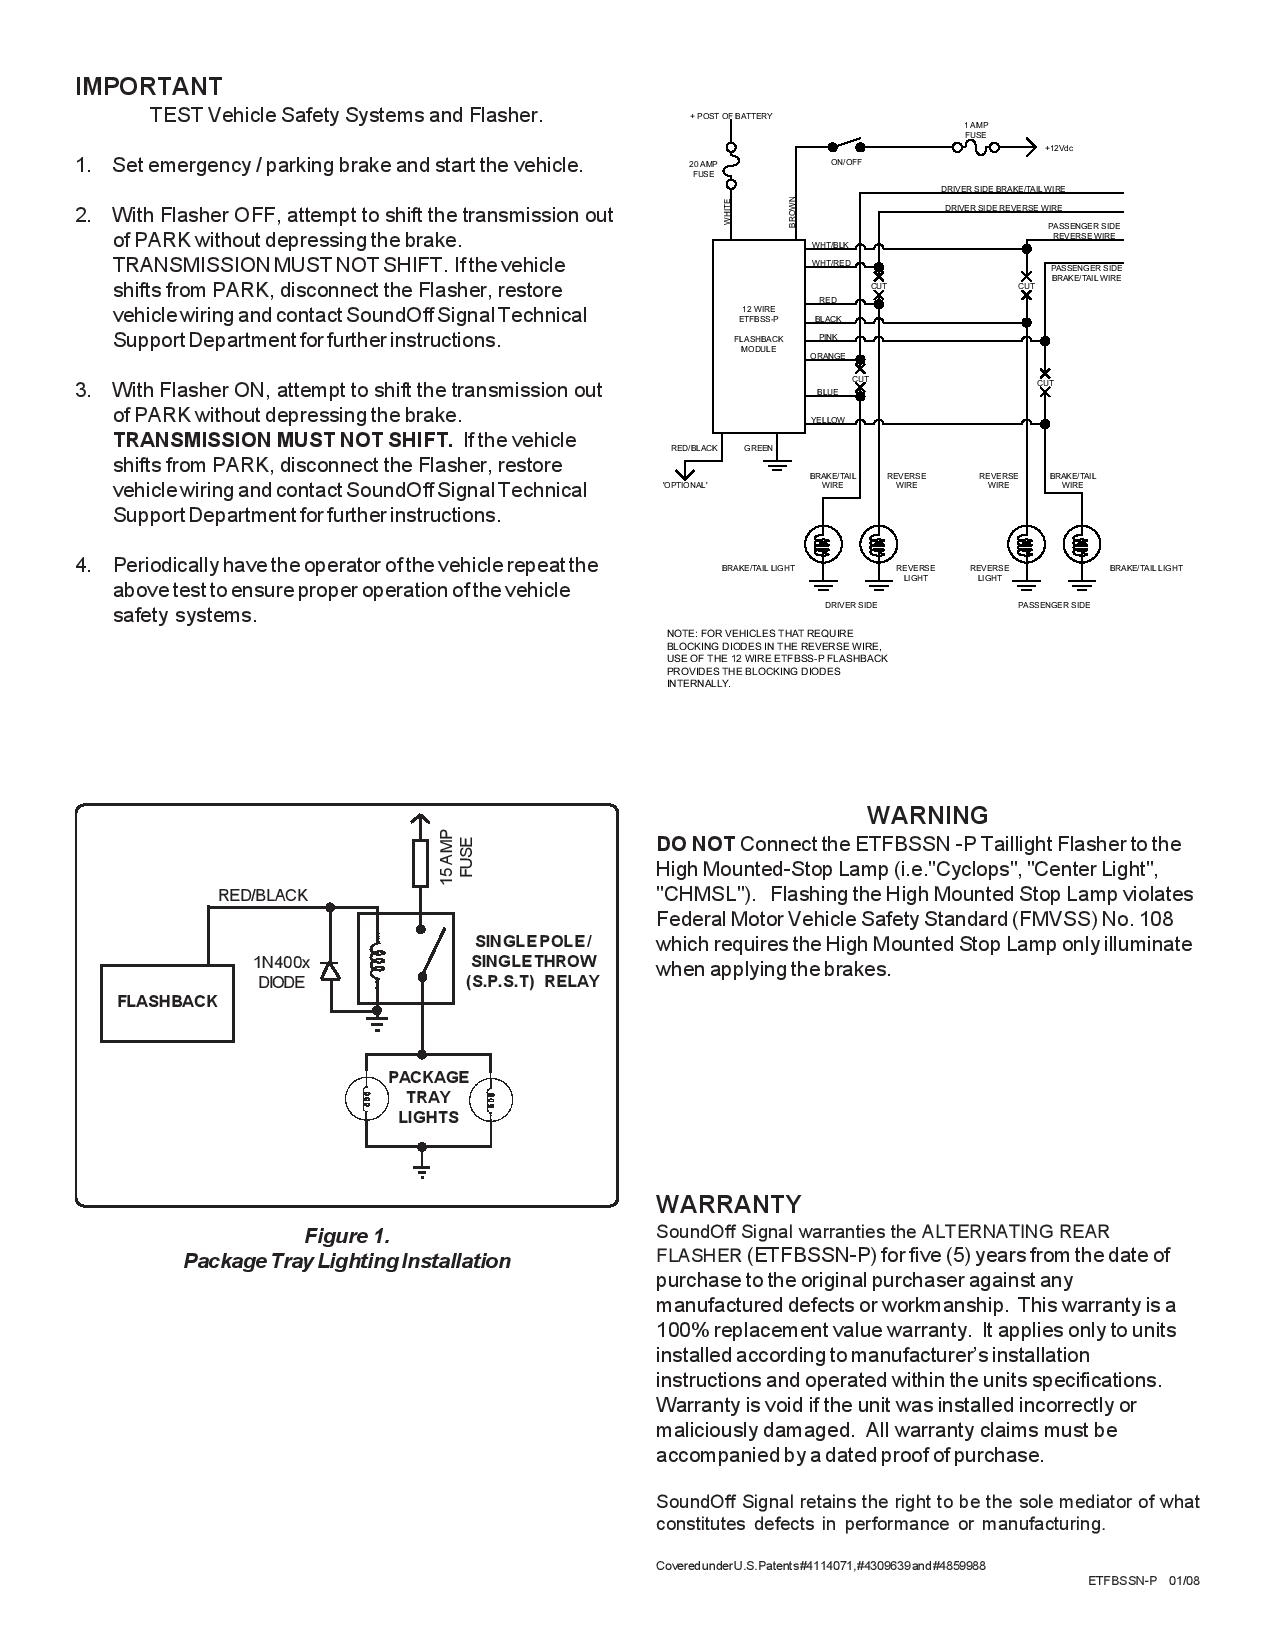 soundoff signal wiring diagram po davidforlife de \u2022sound off flasher wiring diagram best wiring library rh 90 princestaash org soundoff signal etl 5000 wiring diagram soundoff signal blueprint wiring diagram